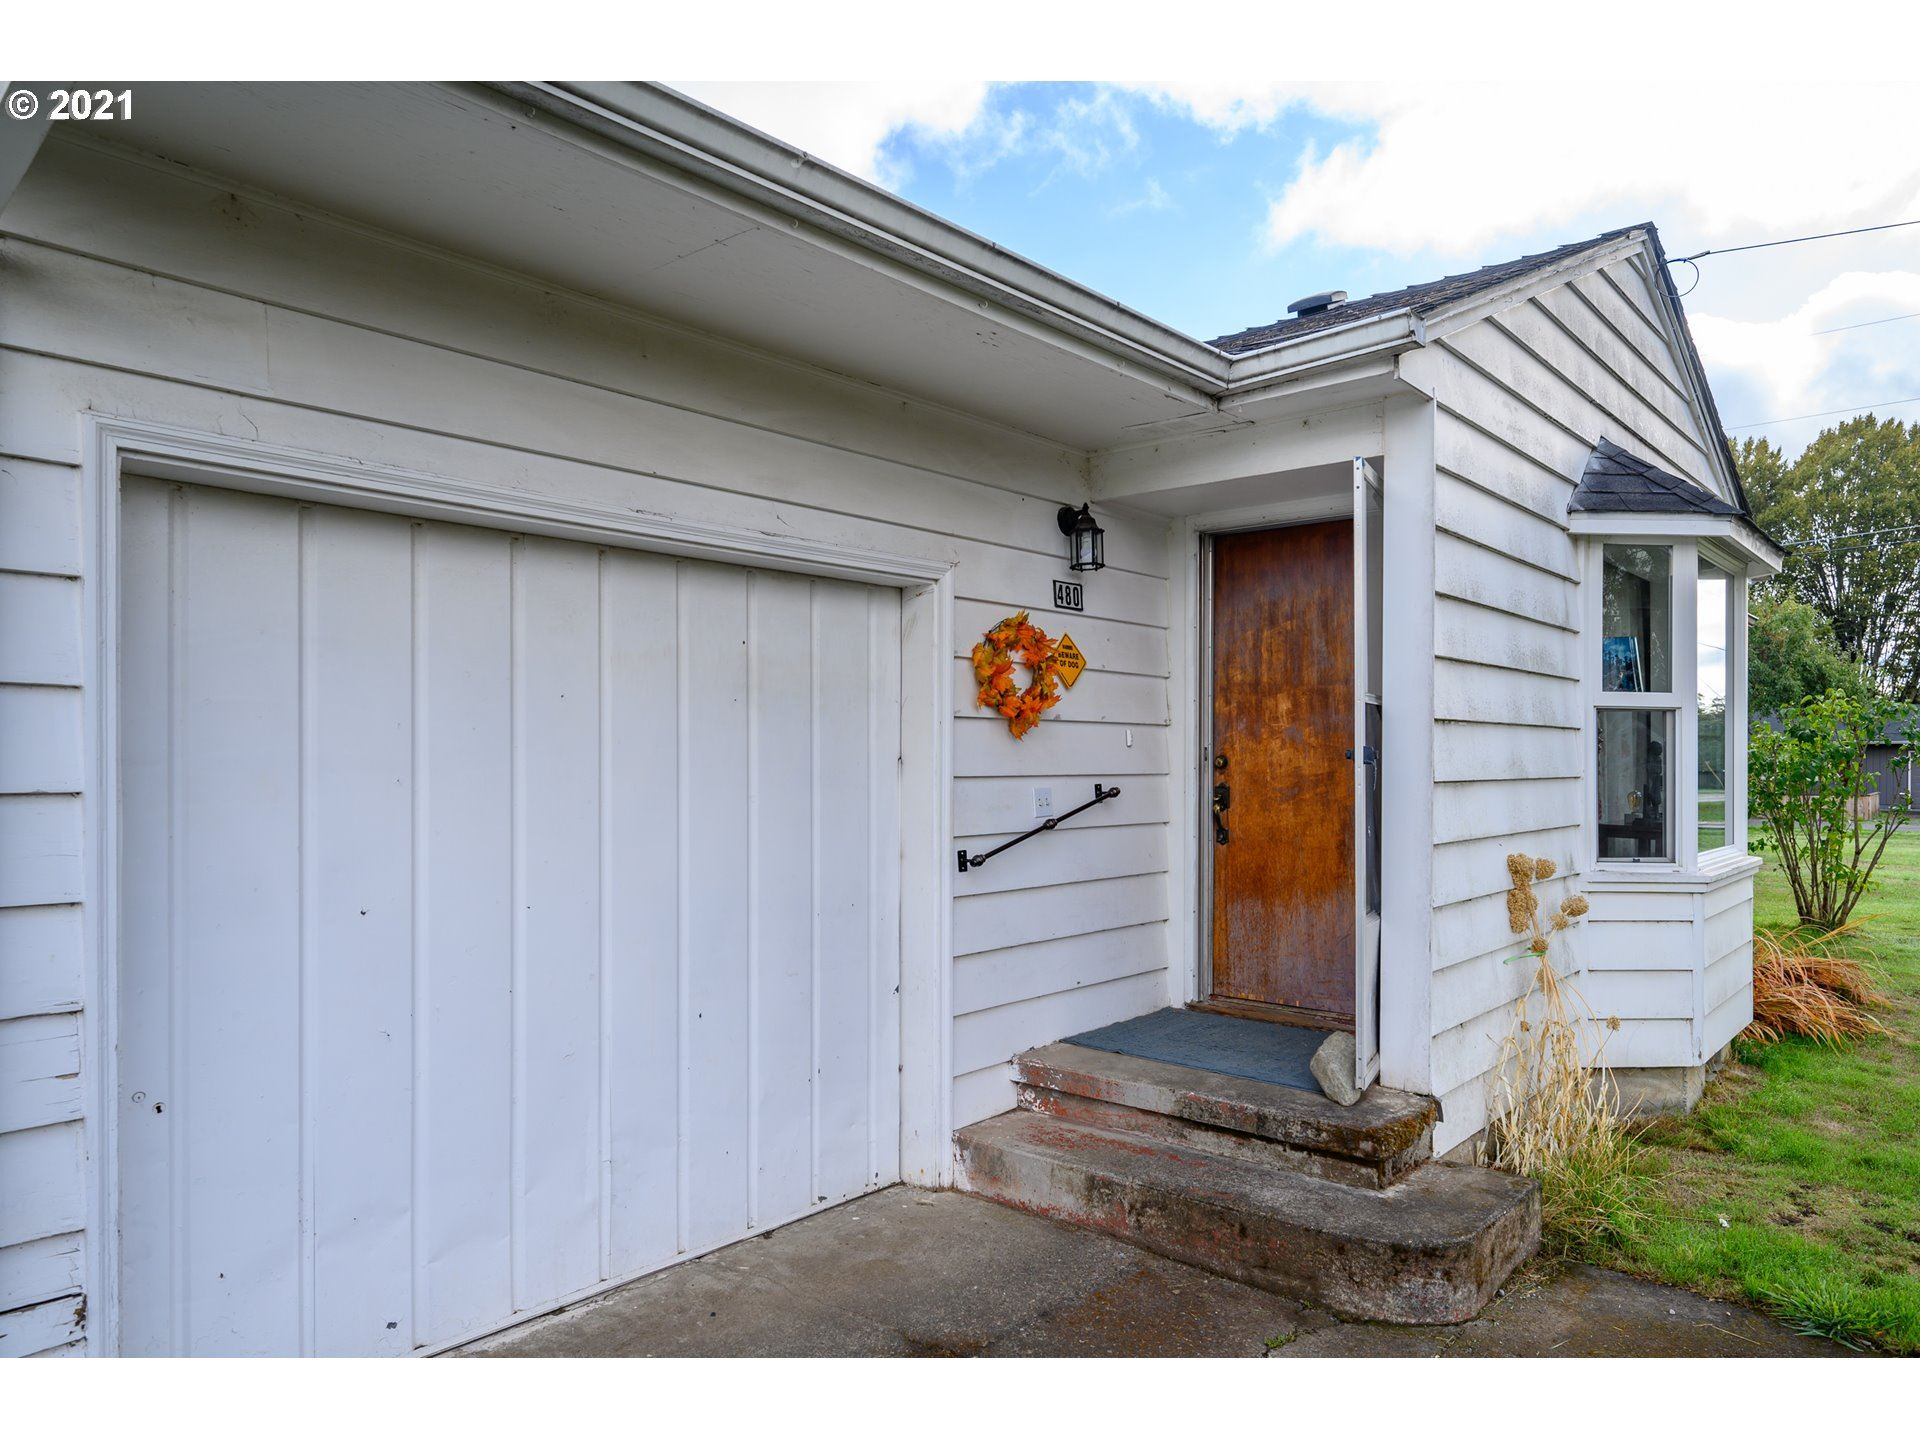 Photo of 480 SE 10TH ST, Dundee, OR 97115 (MLS # 21679782)